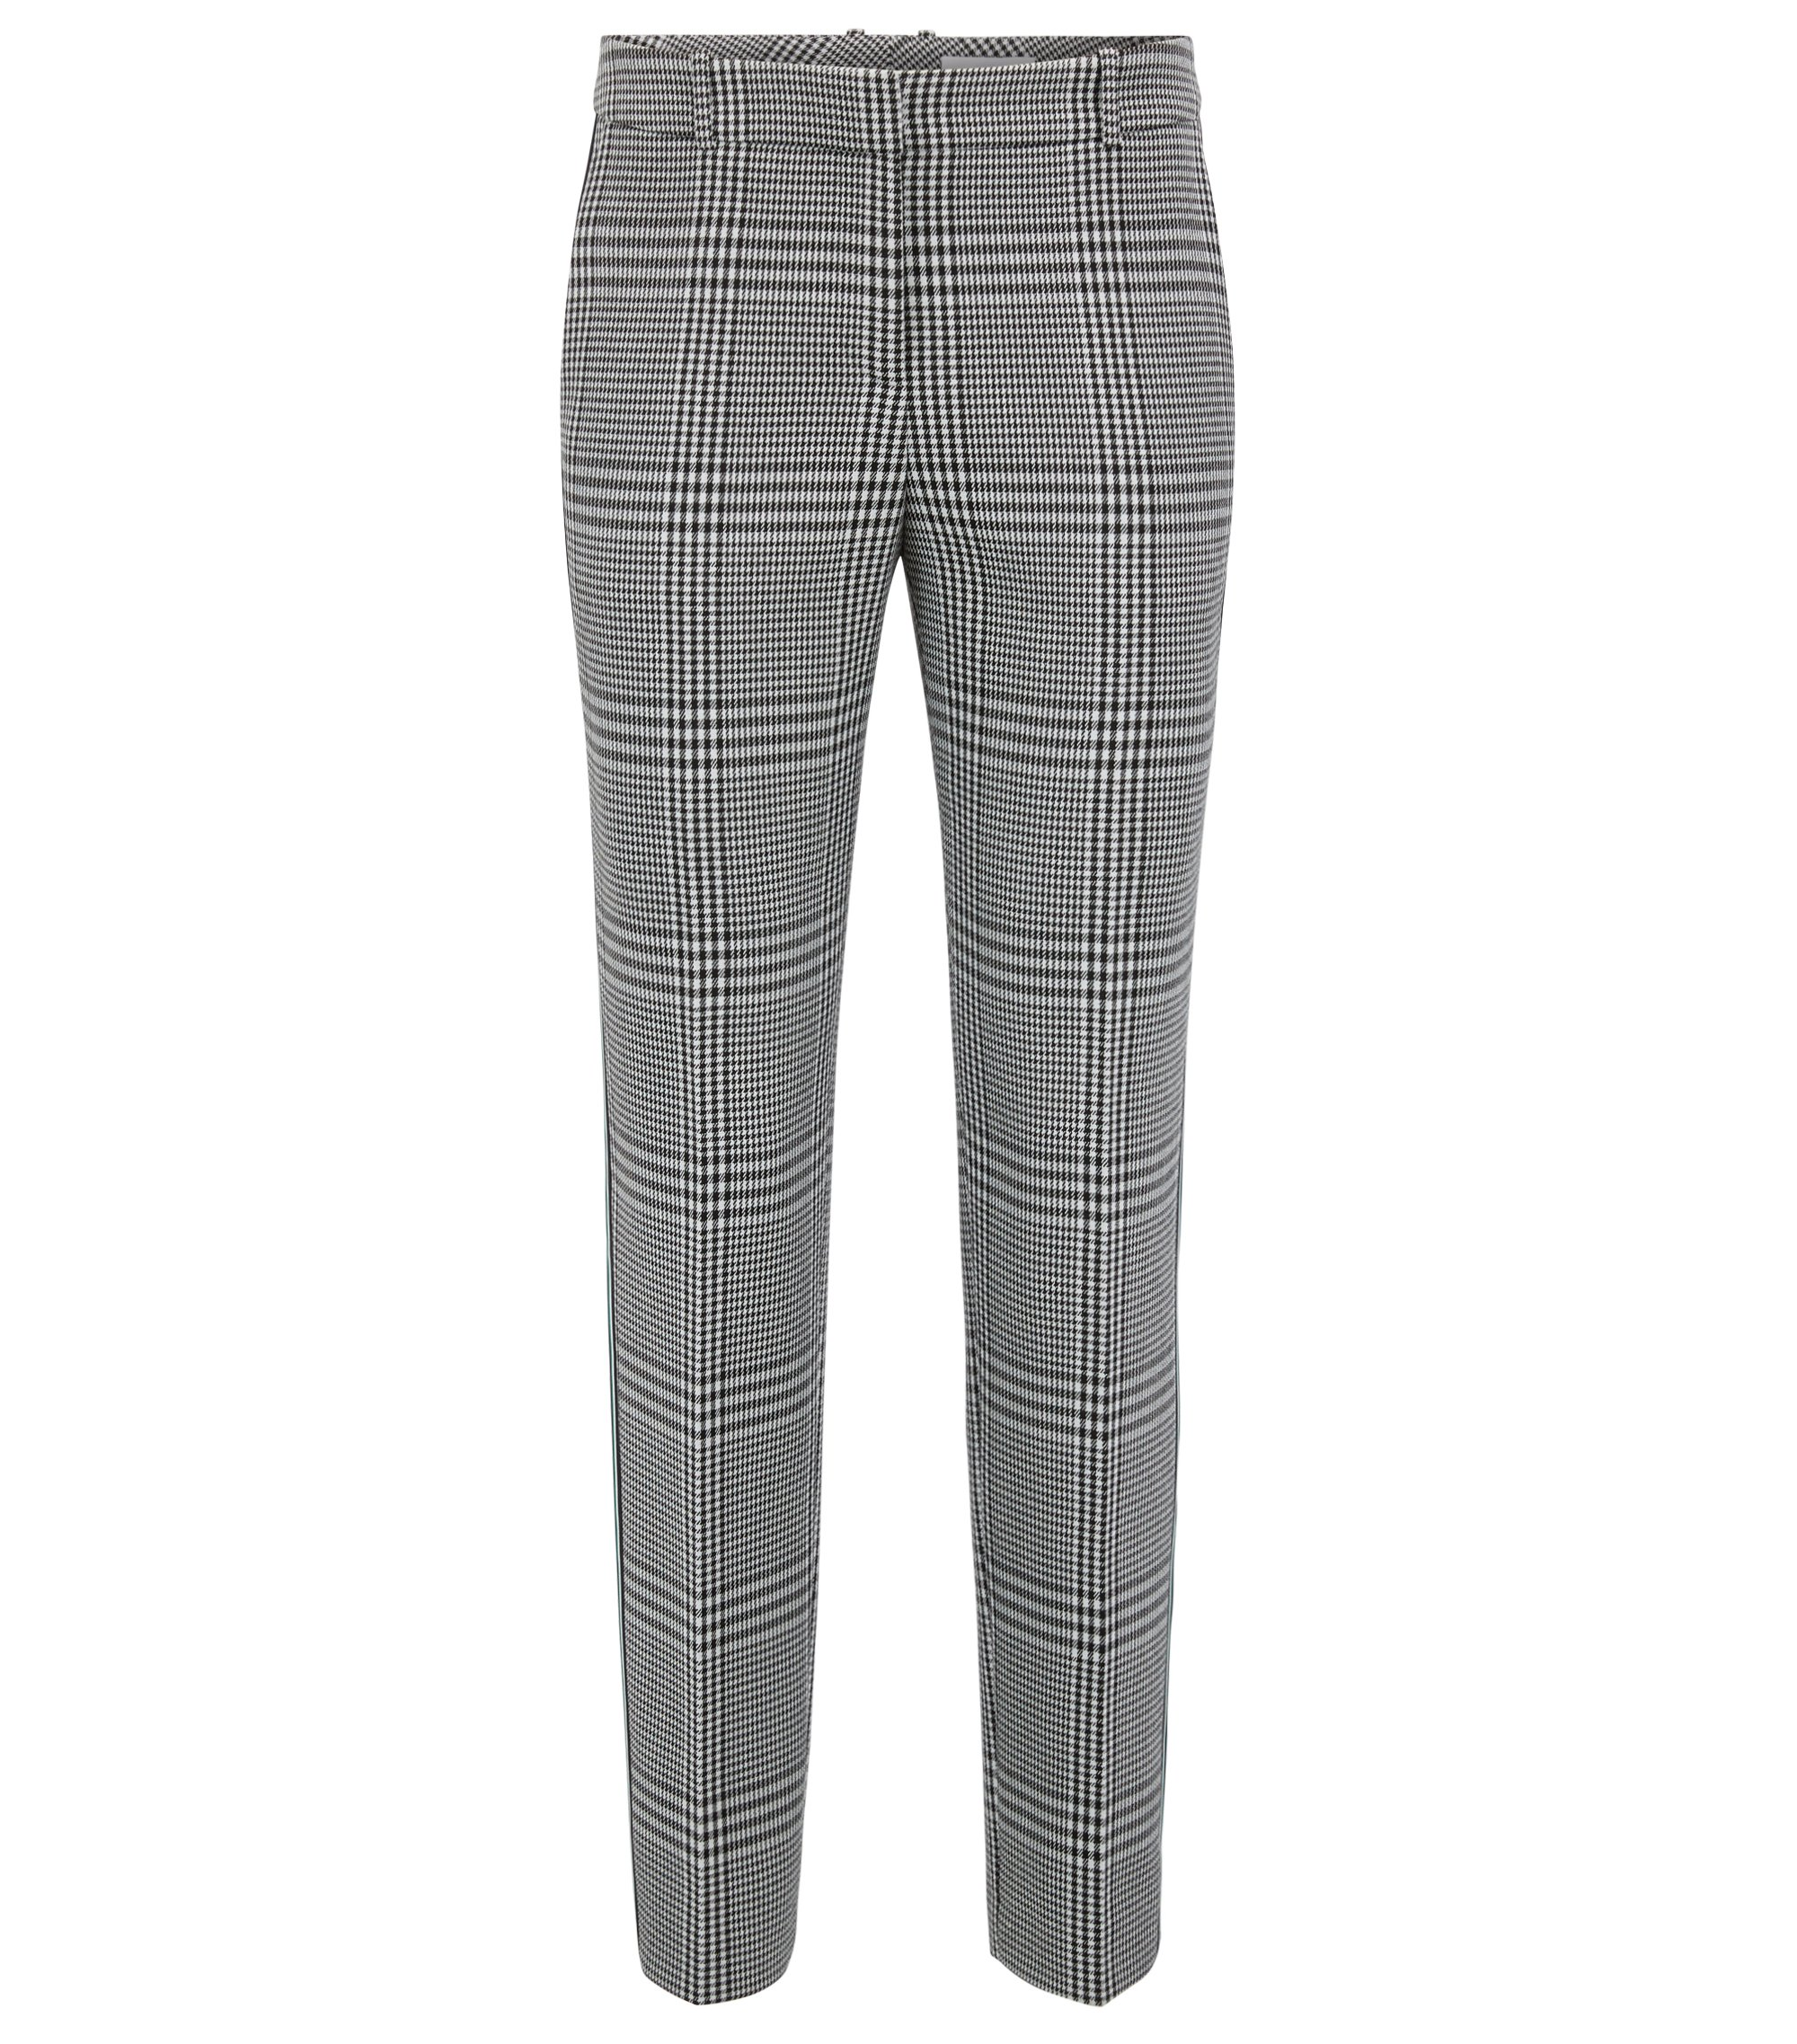 Tapered pants in Glen-check fabric with striped taping, Patterned